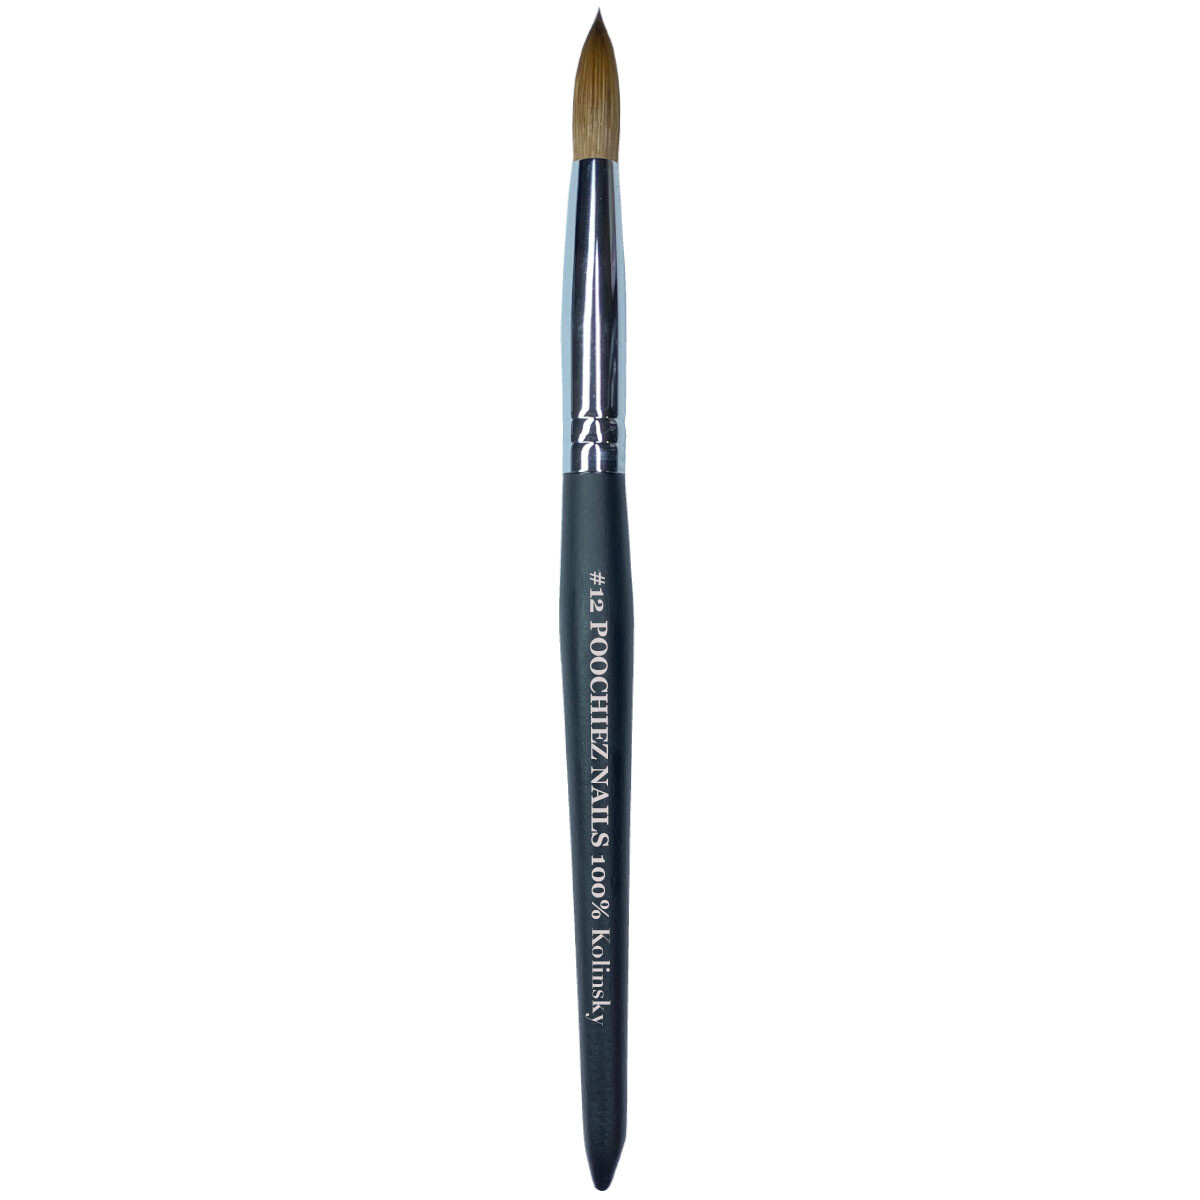 #12 POOCHIEZ NAILS ACRYLIC BRUSH (PINCHED)